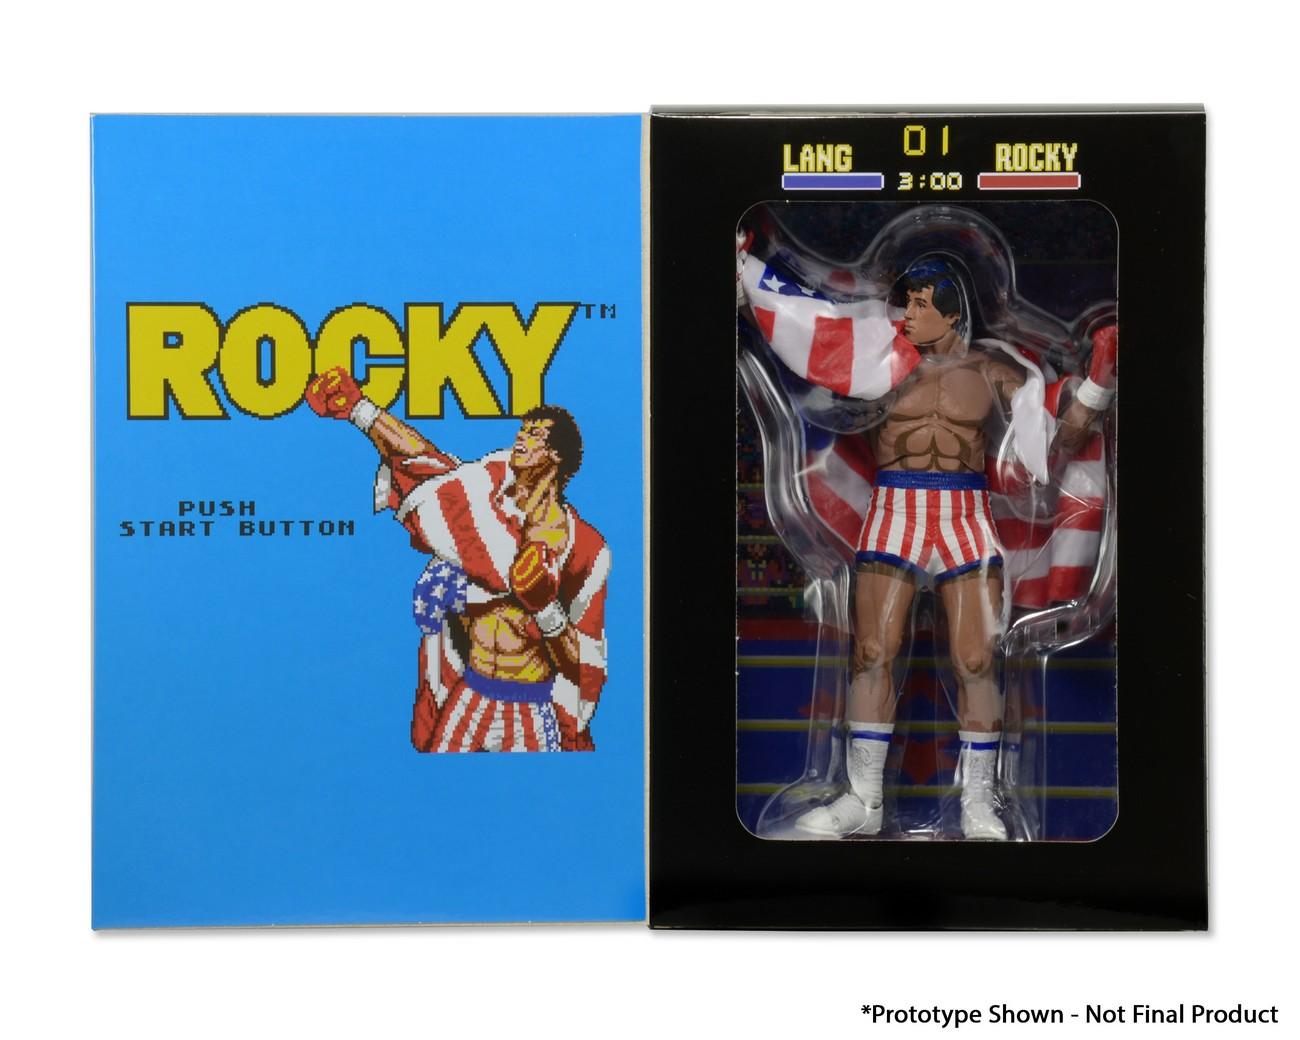 NECA Closer Look: 8-Bit Rocky Classic Video Game Appearance 7″ Action Figure